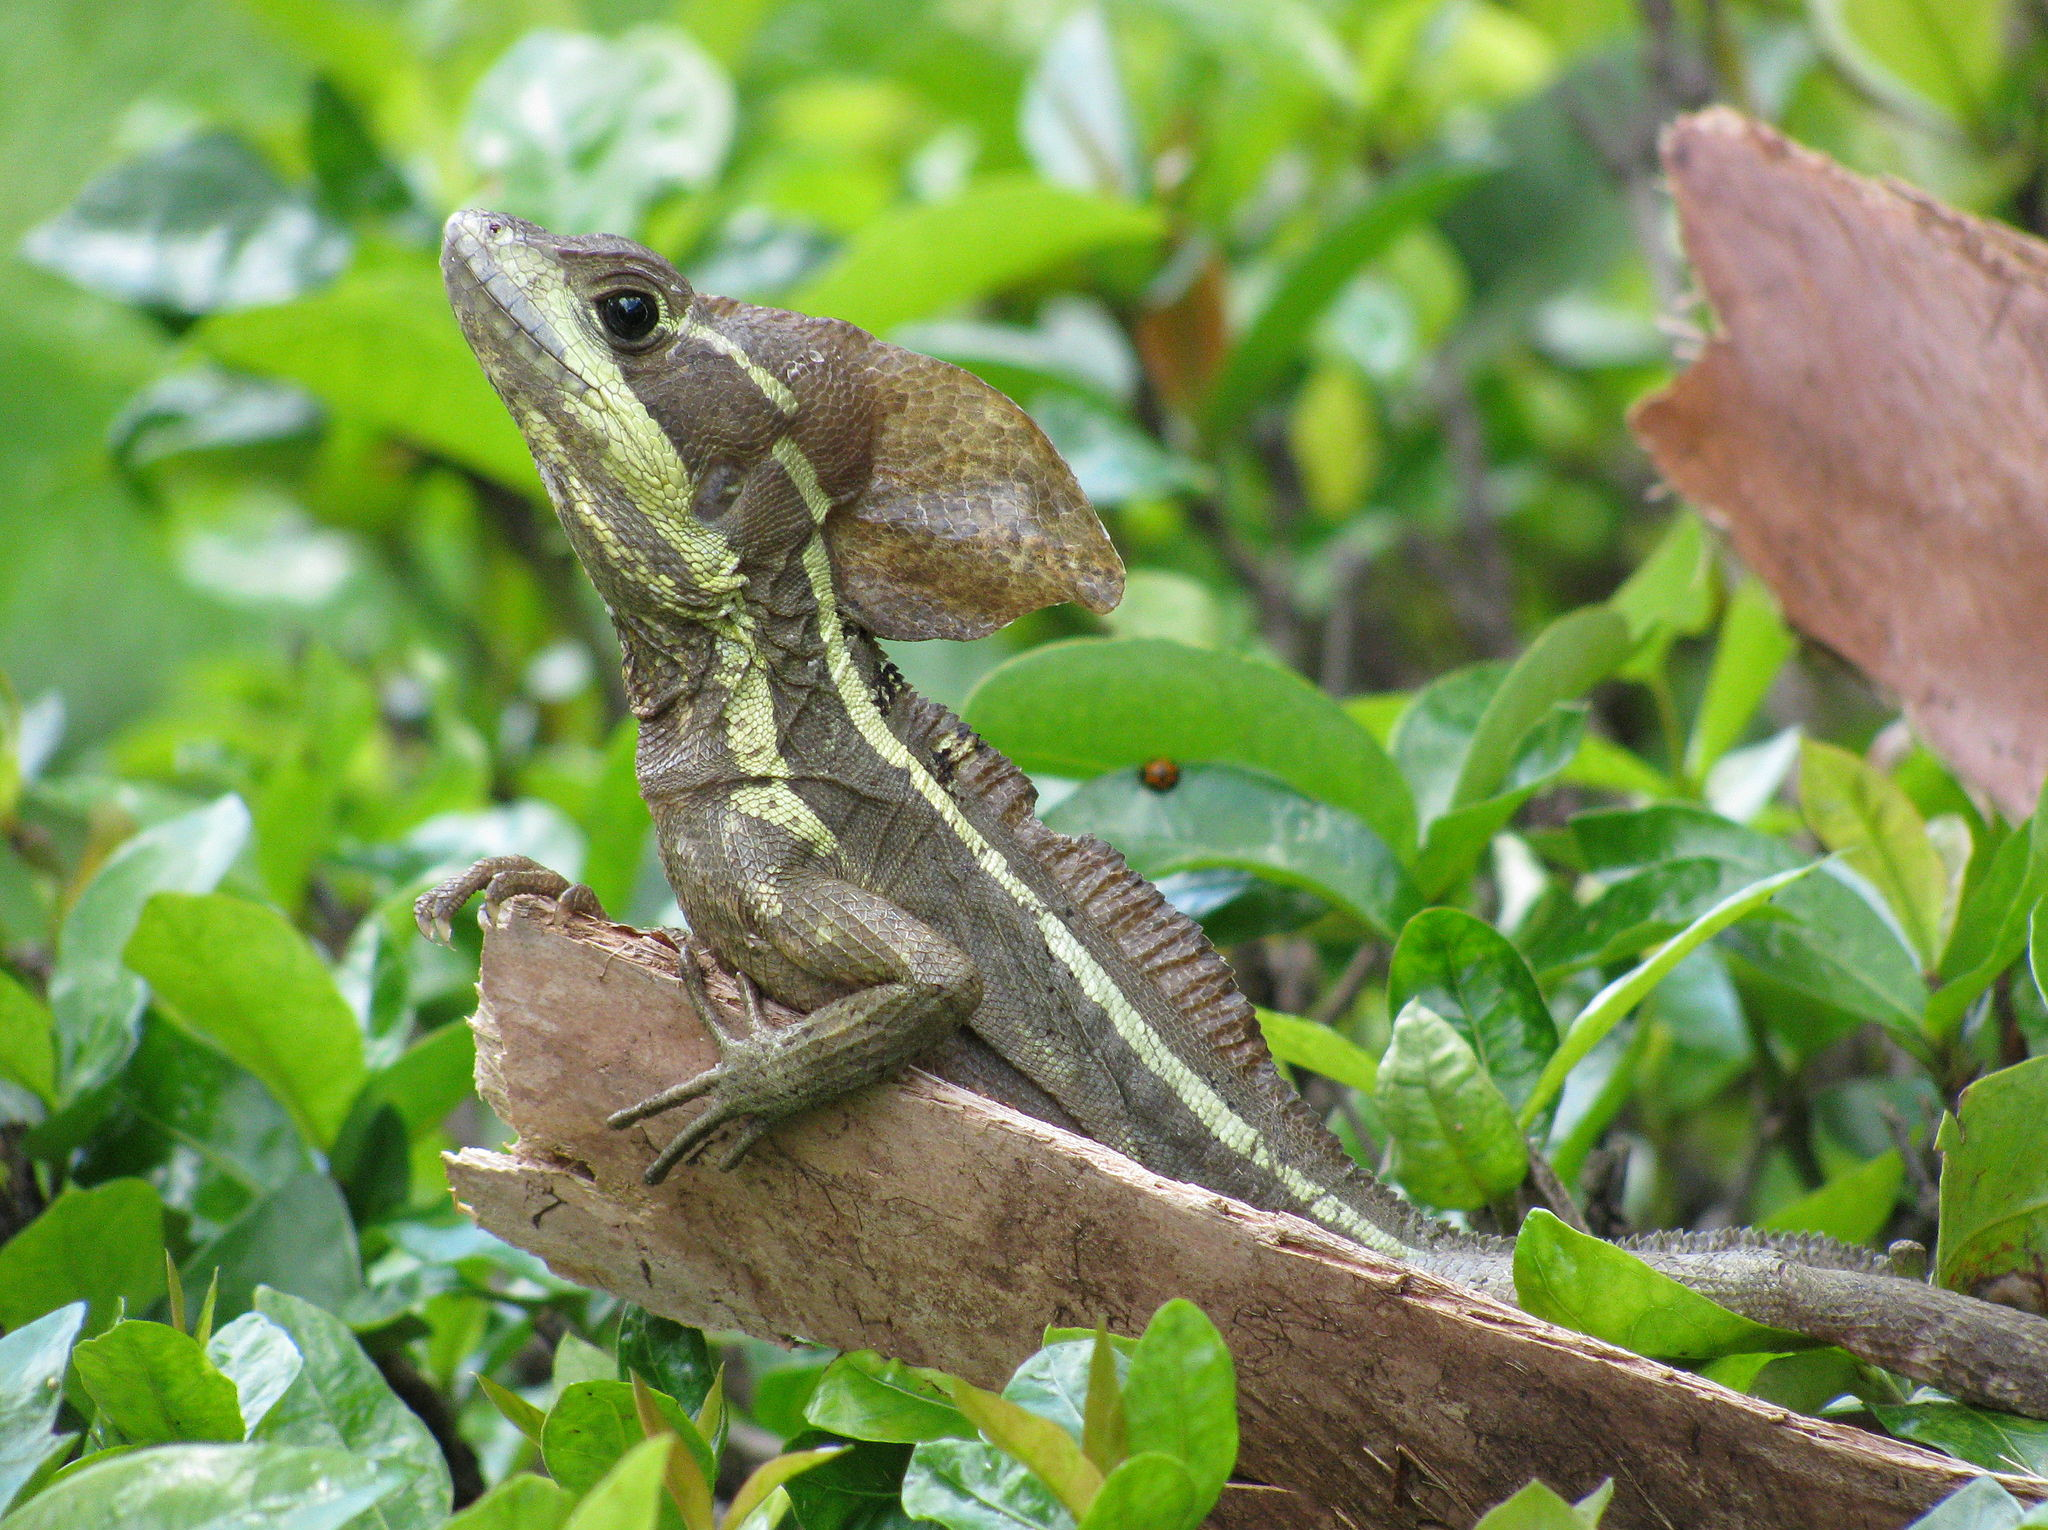 nature essays the jesus christ lizard